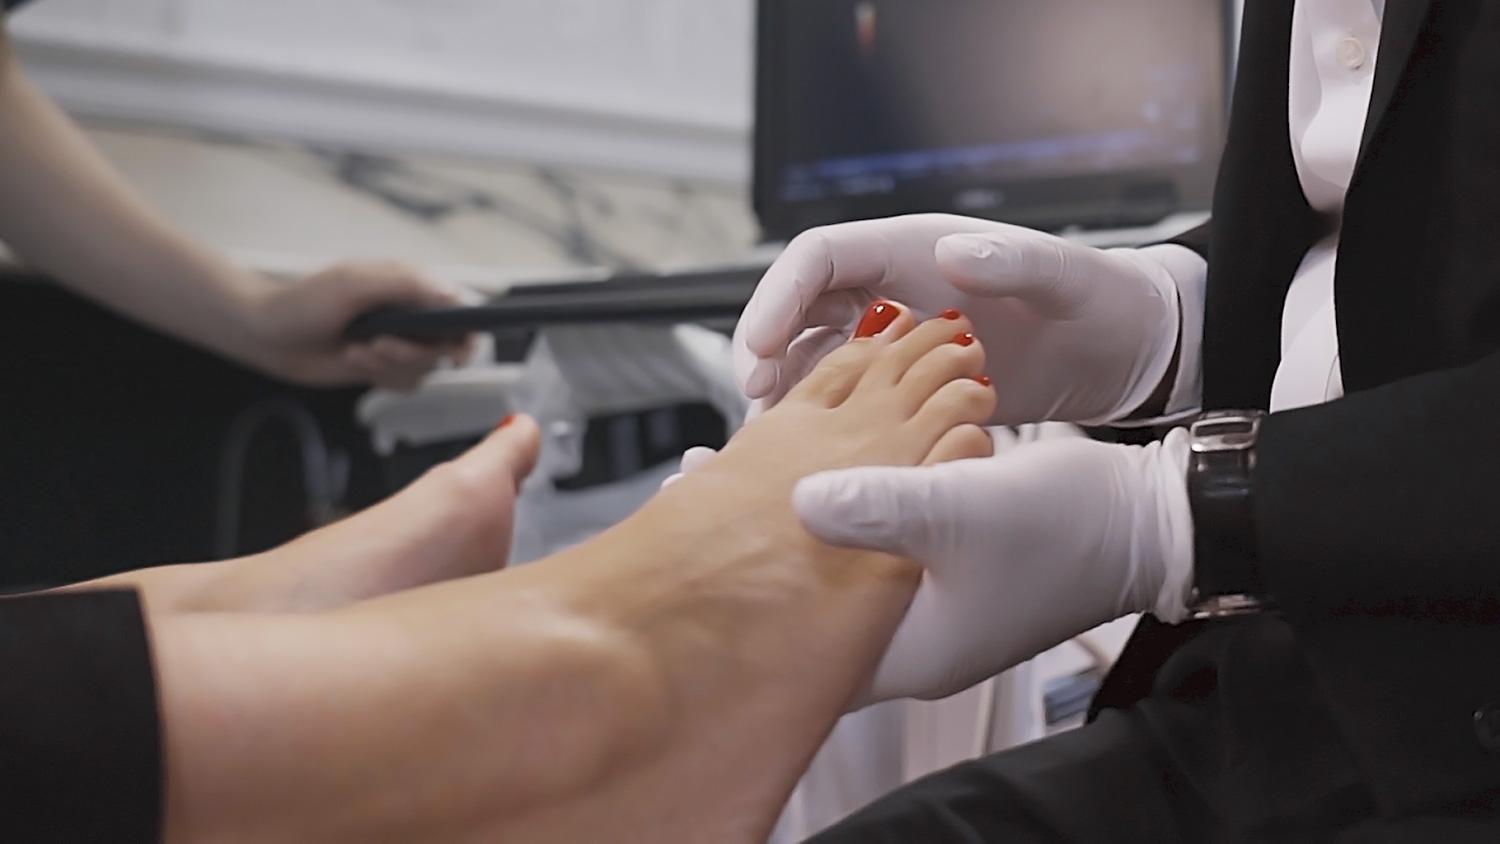 Image of Mr. Kaser Nazir, Bunion Surgeon, during a foot examination in clinic